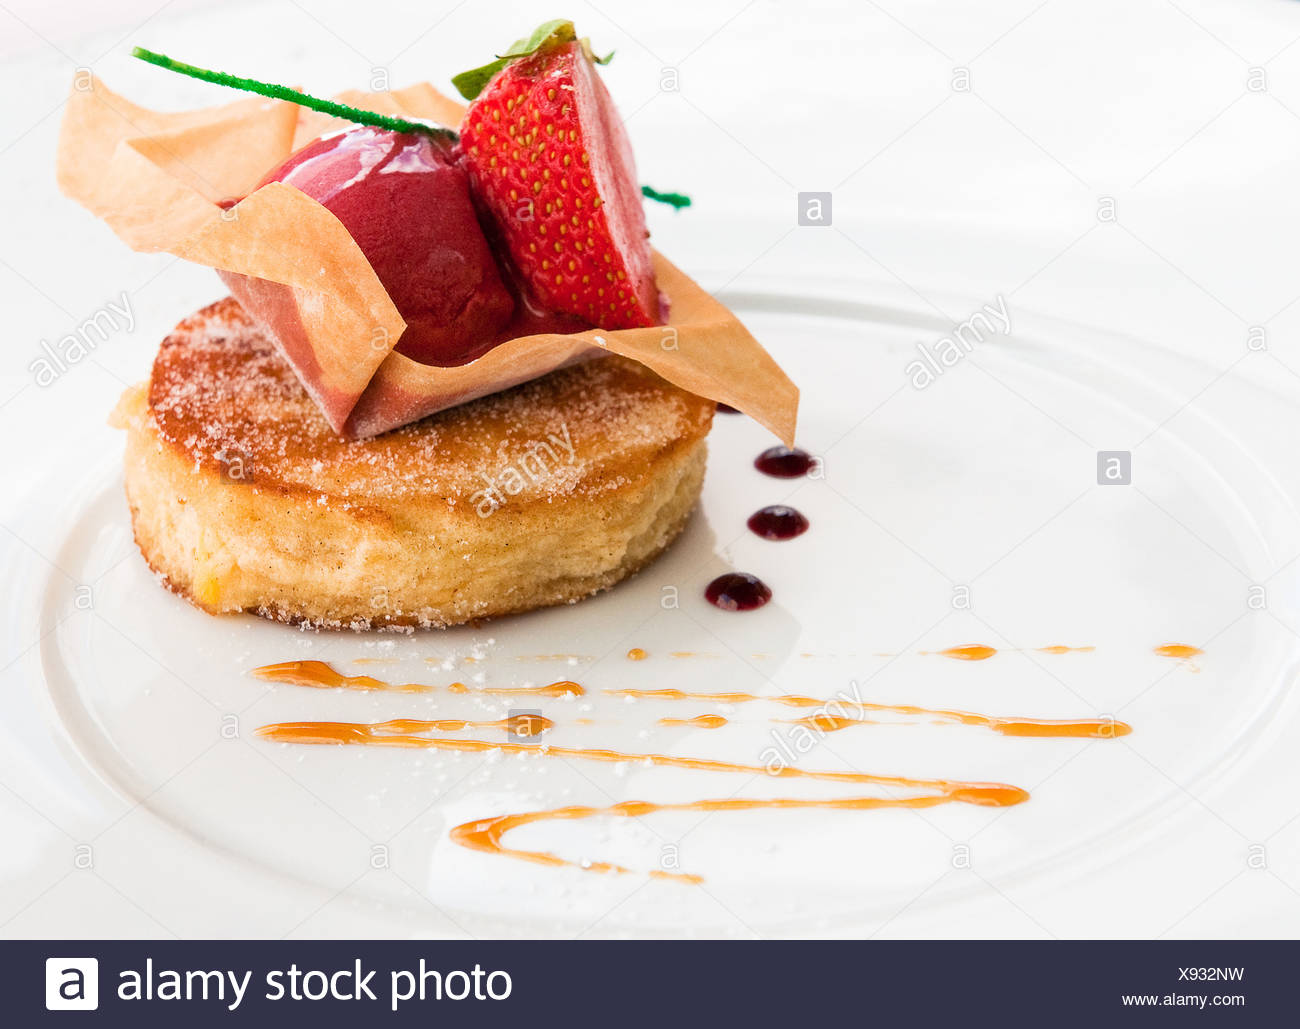 dessert de fantaisie Photo Stock